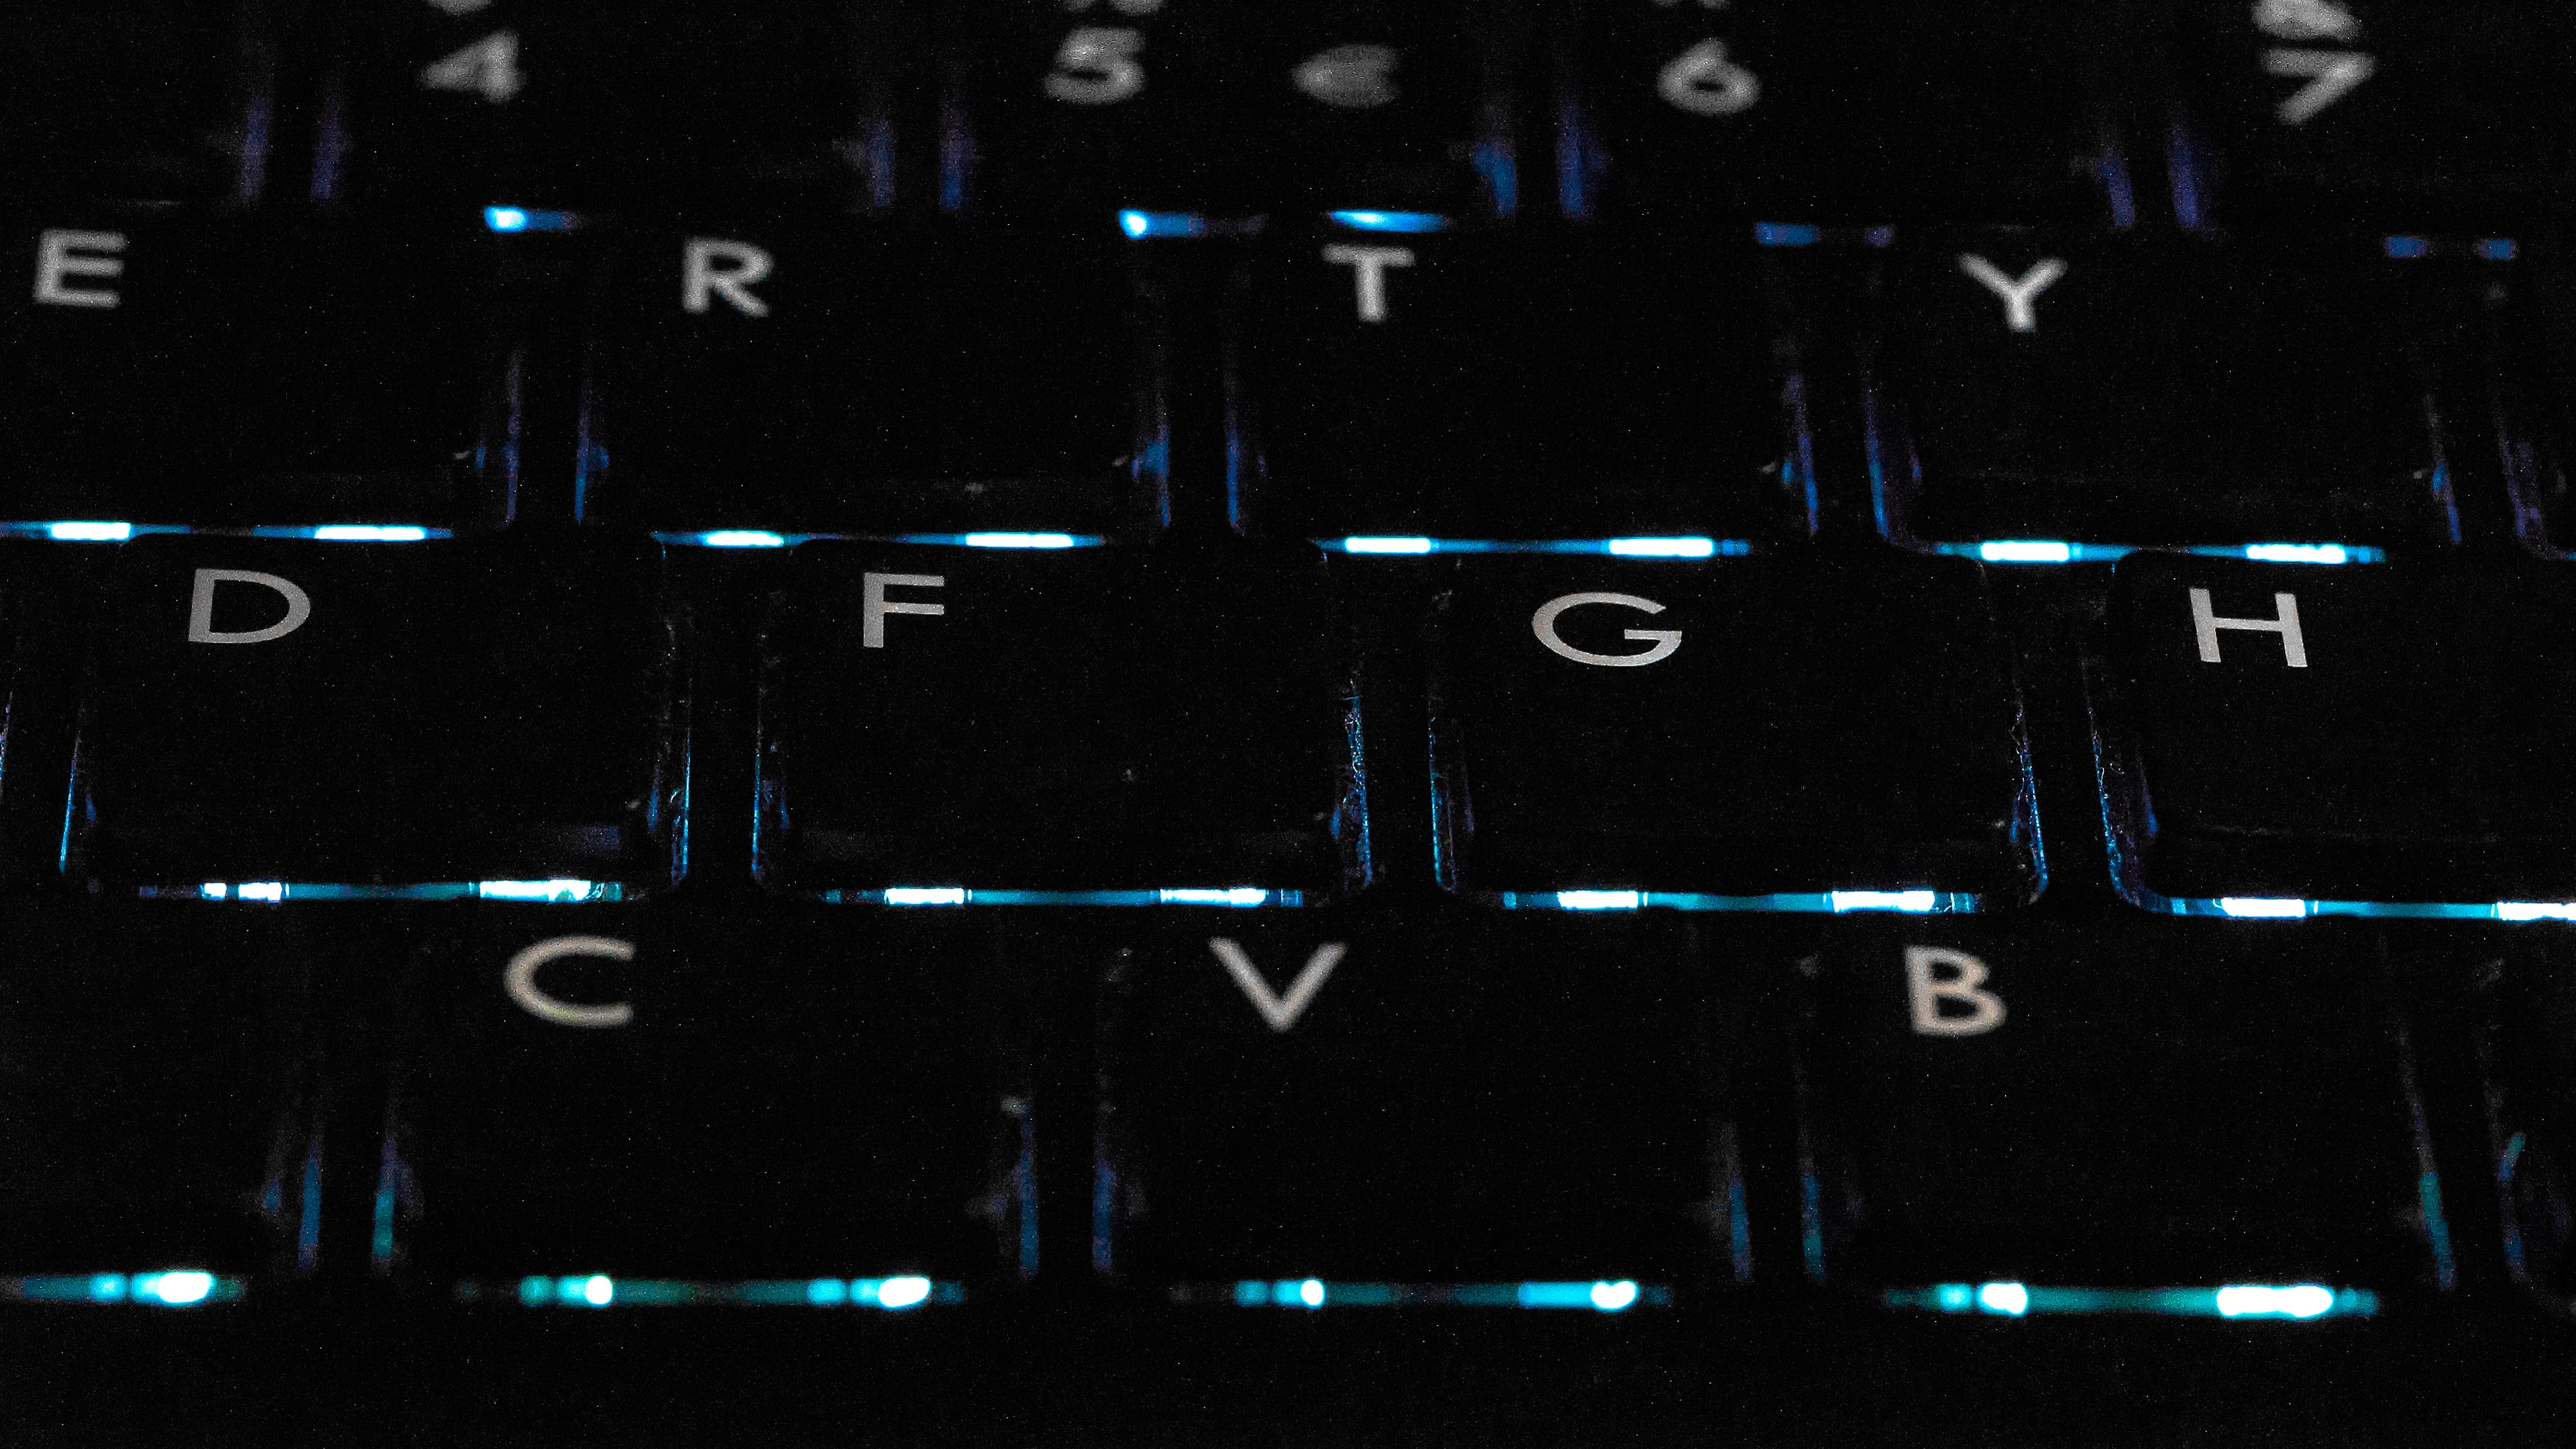 black backlit keyboard